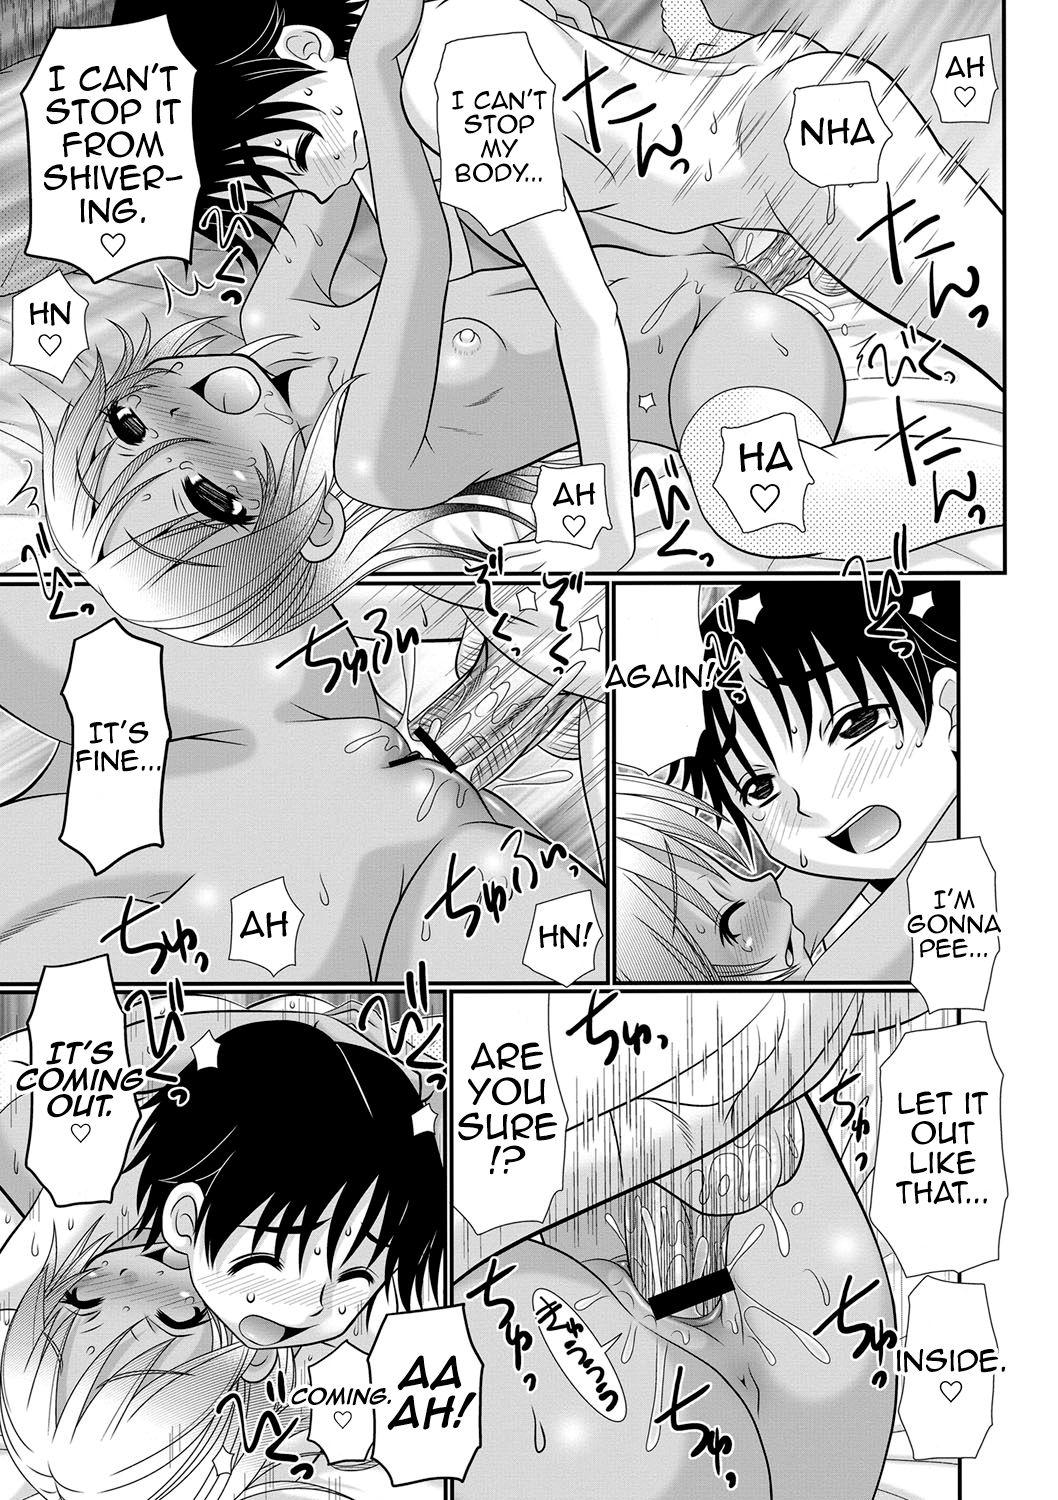 [R-Koga] Hiyake Sex Enikki - Picture Diary of a xxx with the Suntanned Ch.1-2 [Digital] [English] [MrBubbles] 30